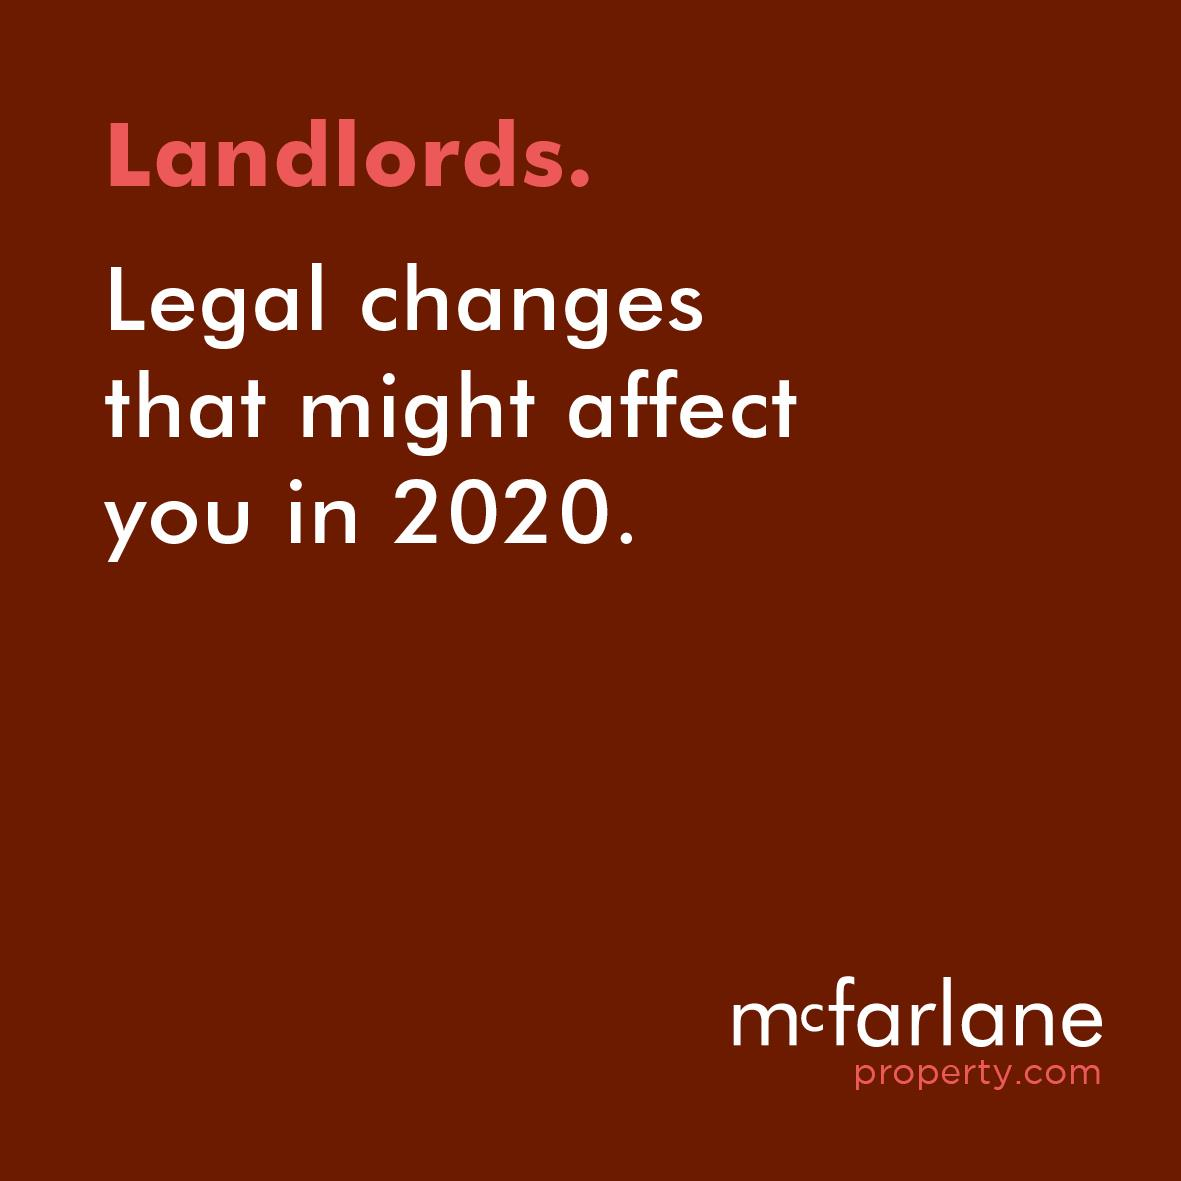 LANDLORDS: Legal changes that might affect you in 2020